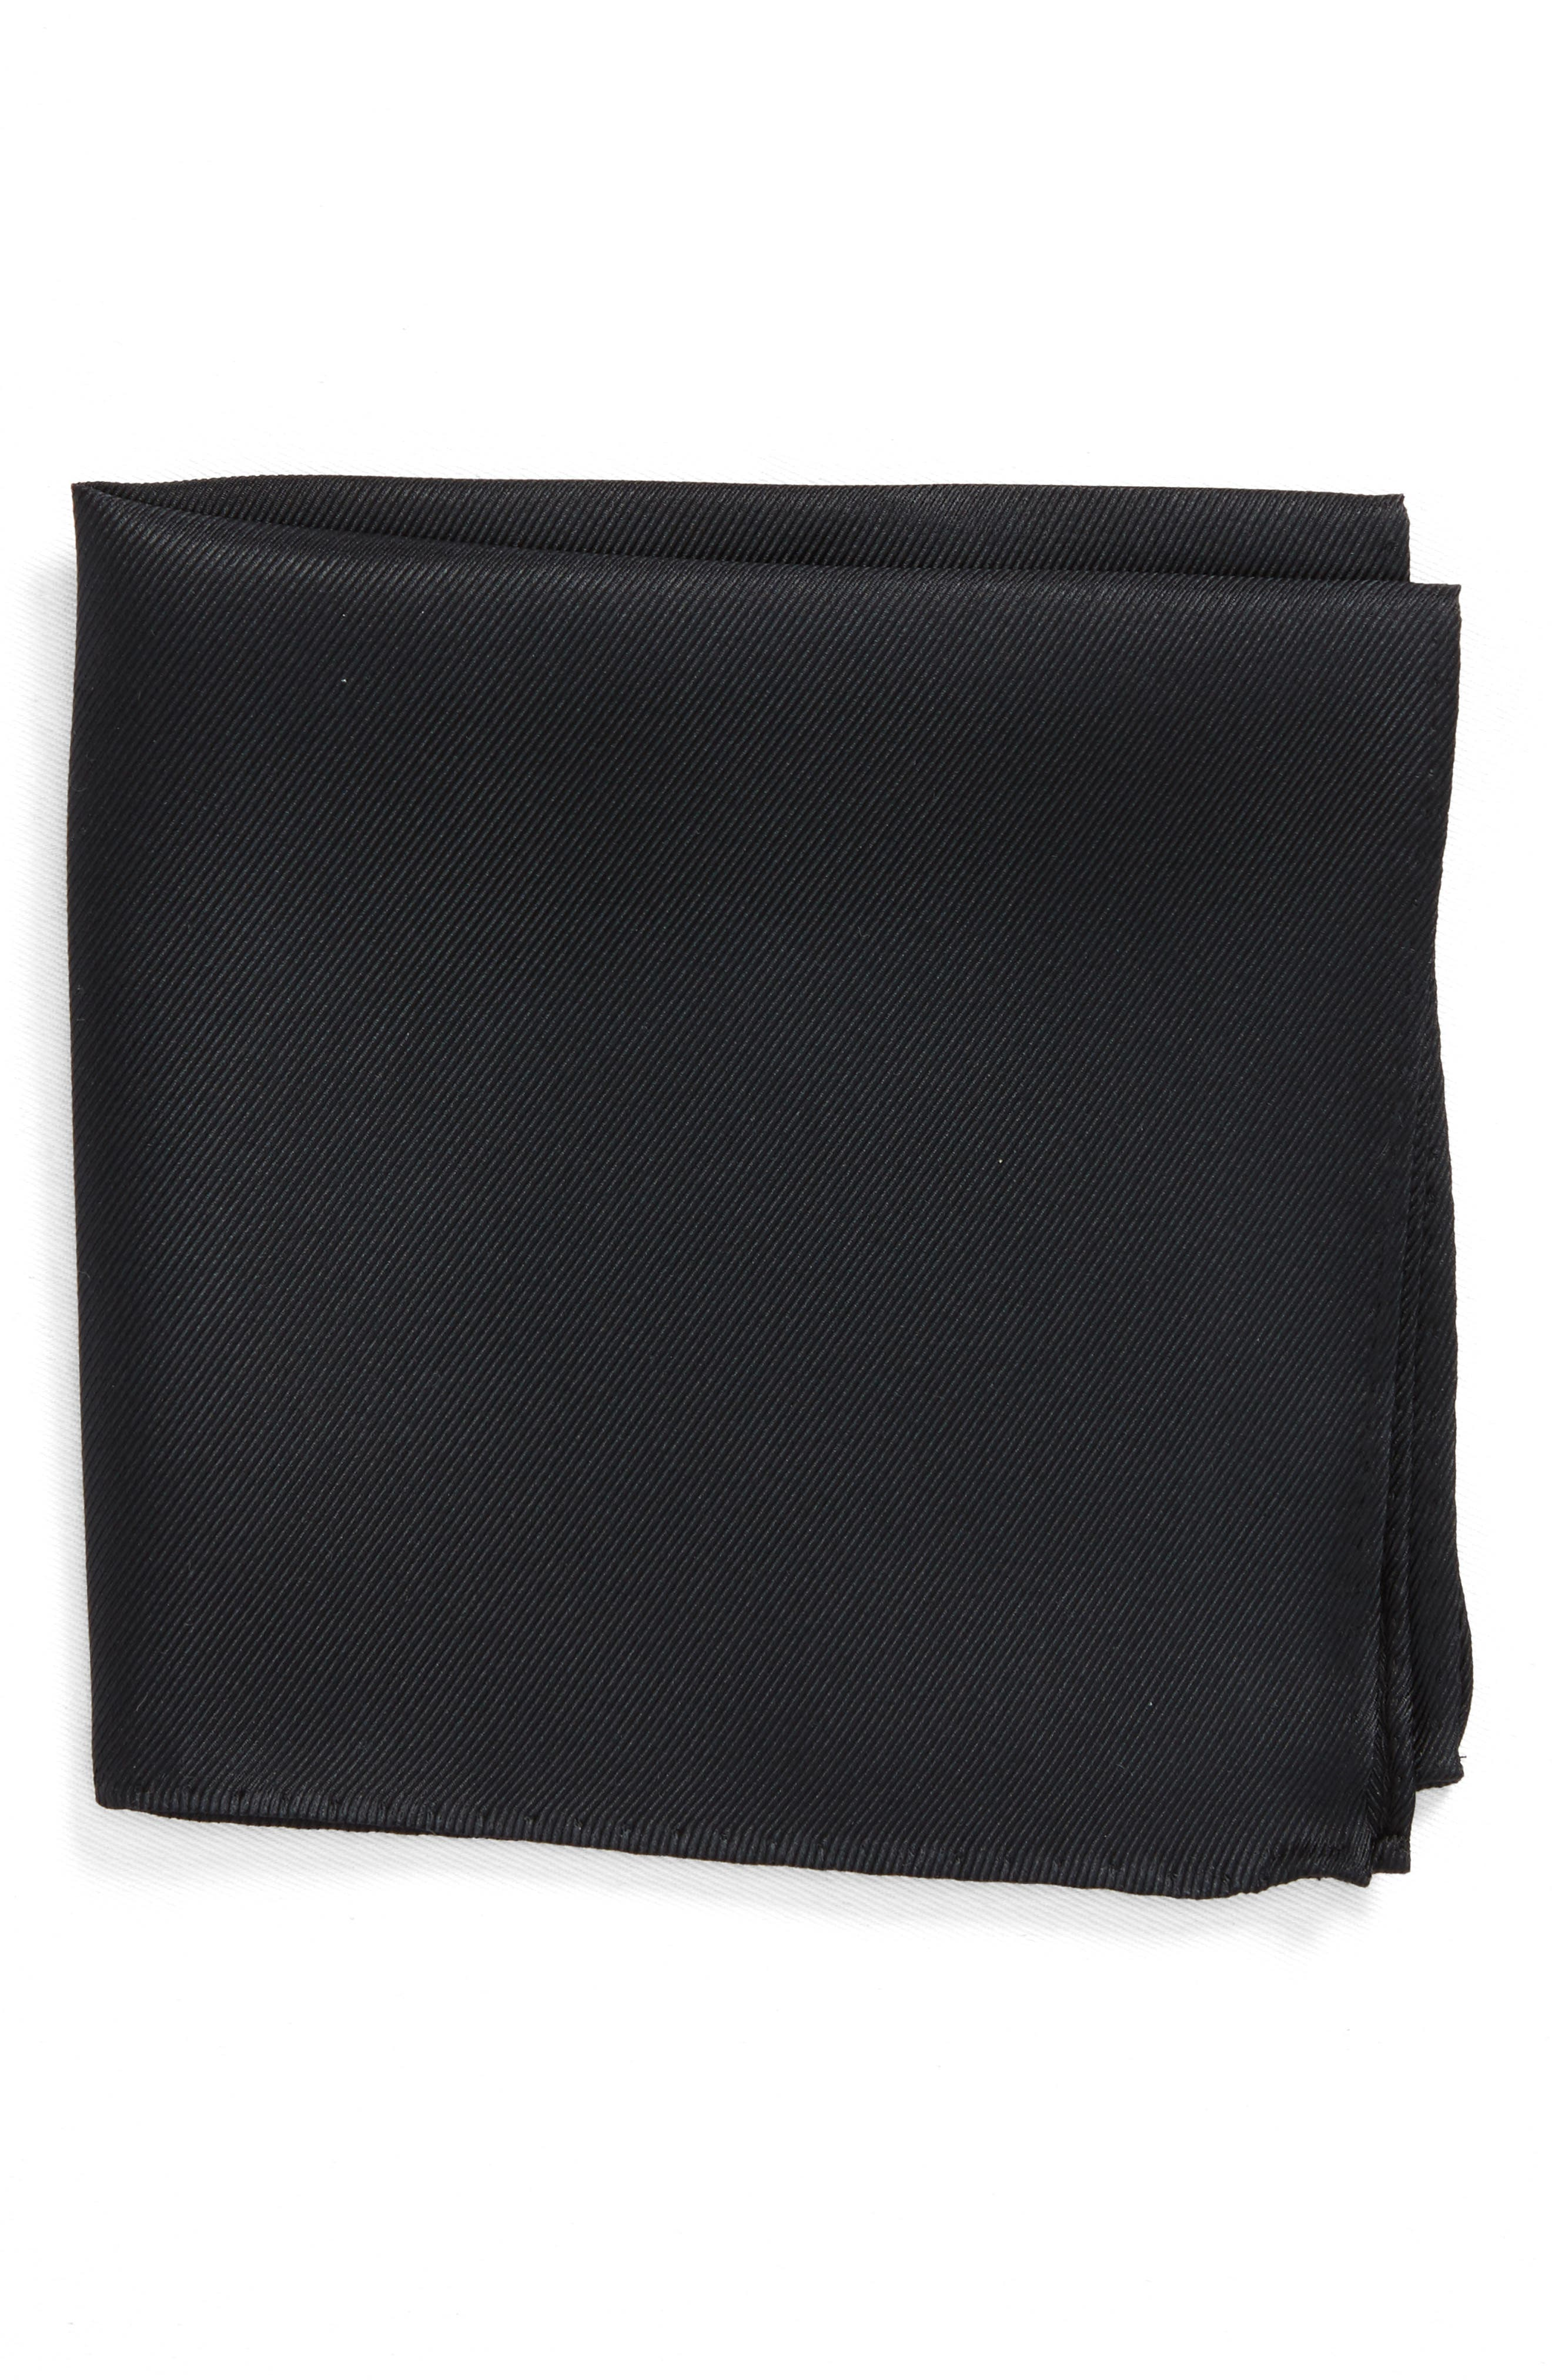 King Twill Silk Pocket Square,                         Main,                         color, BLACK